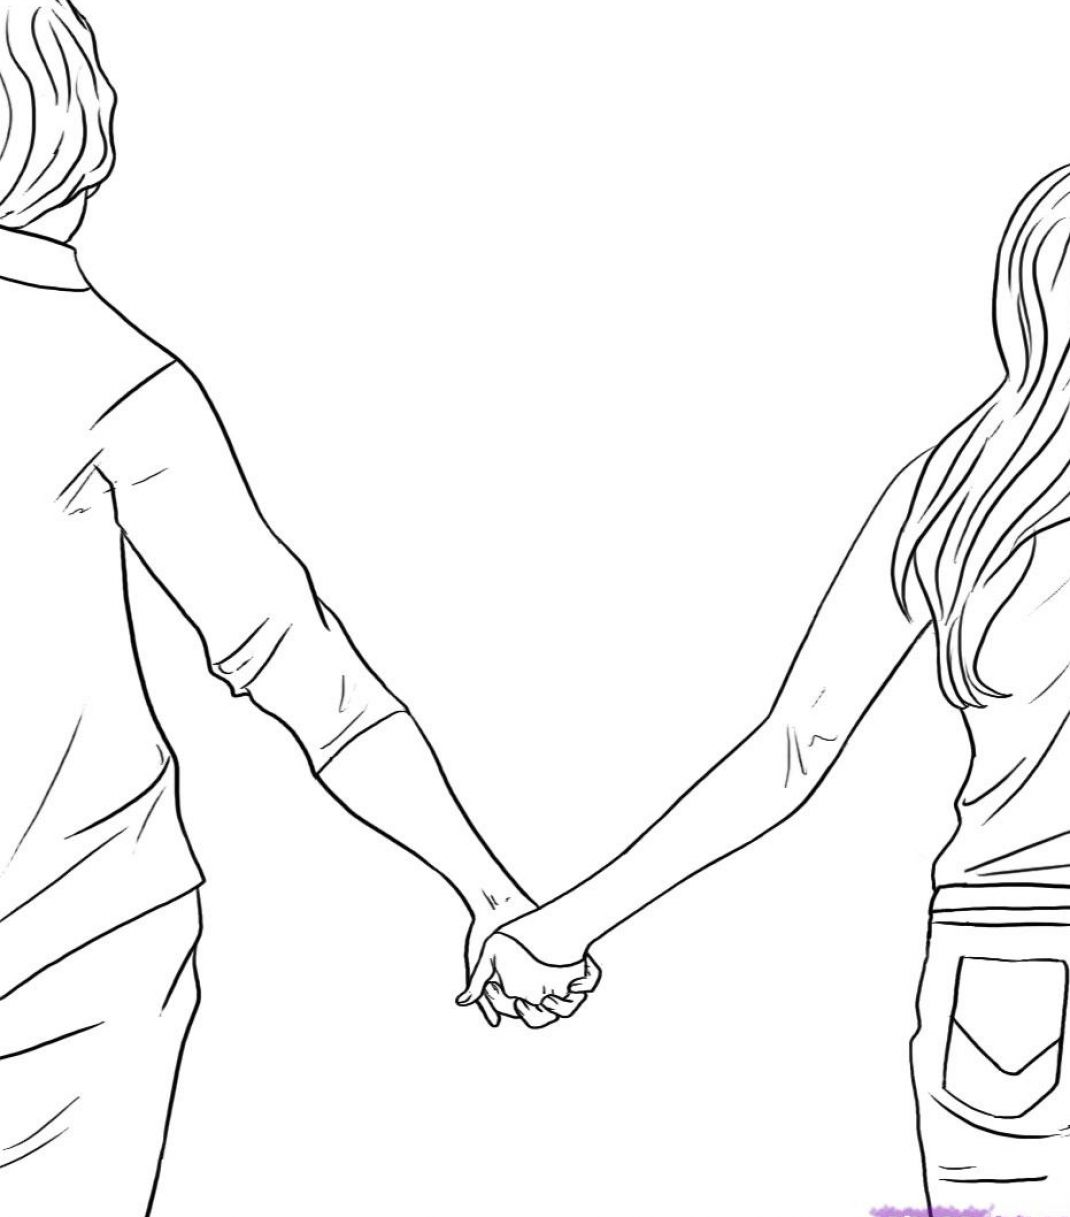 1070x1217 Best Photos Of Holding Hands Drawing